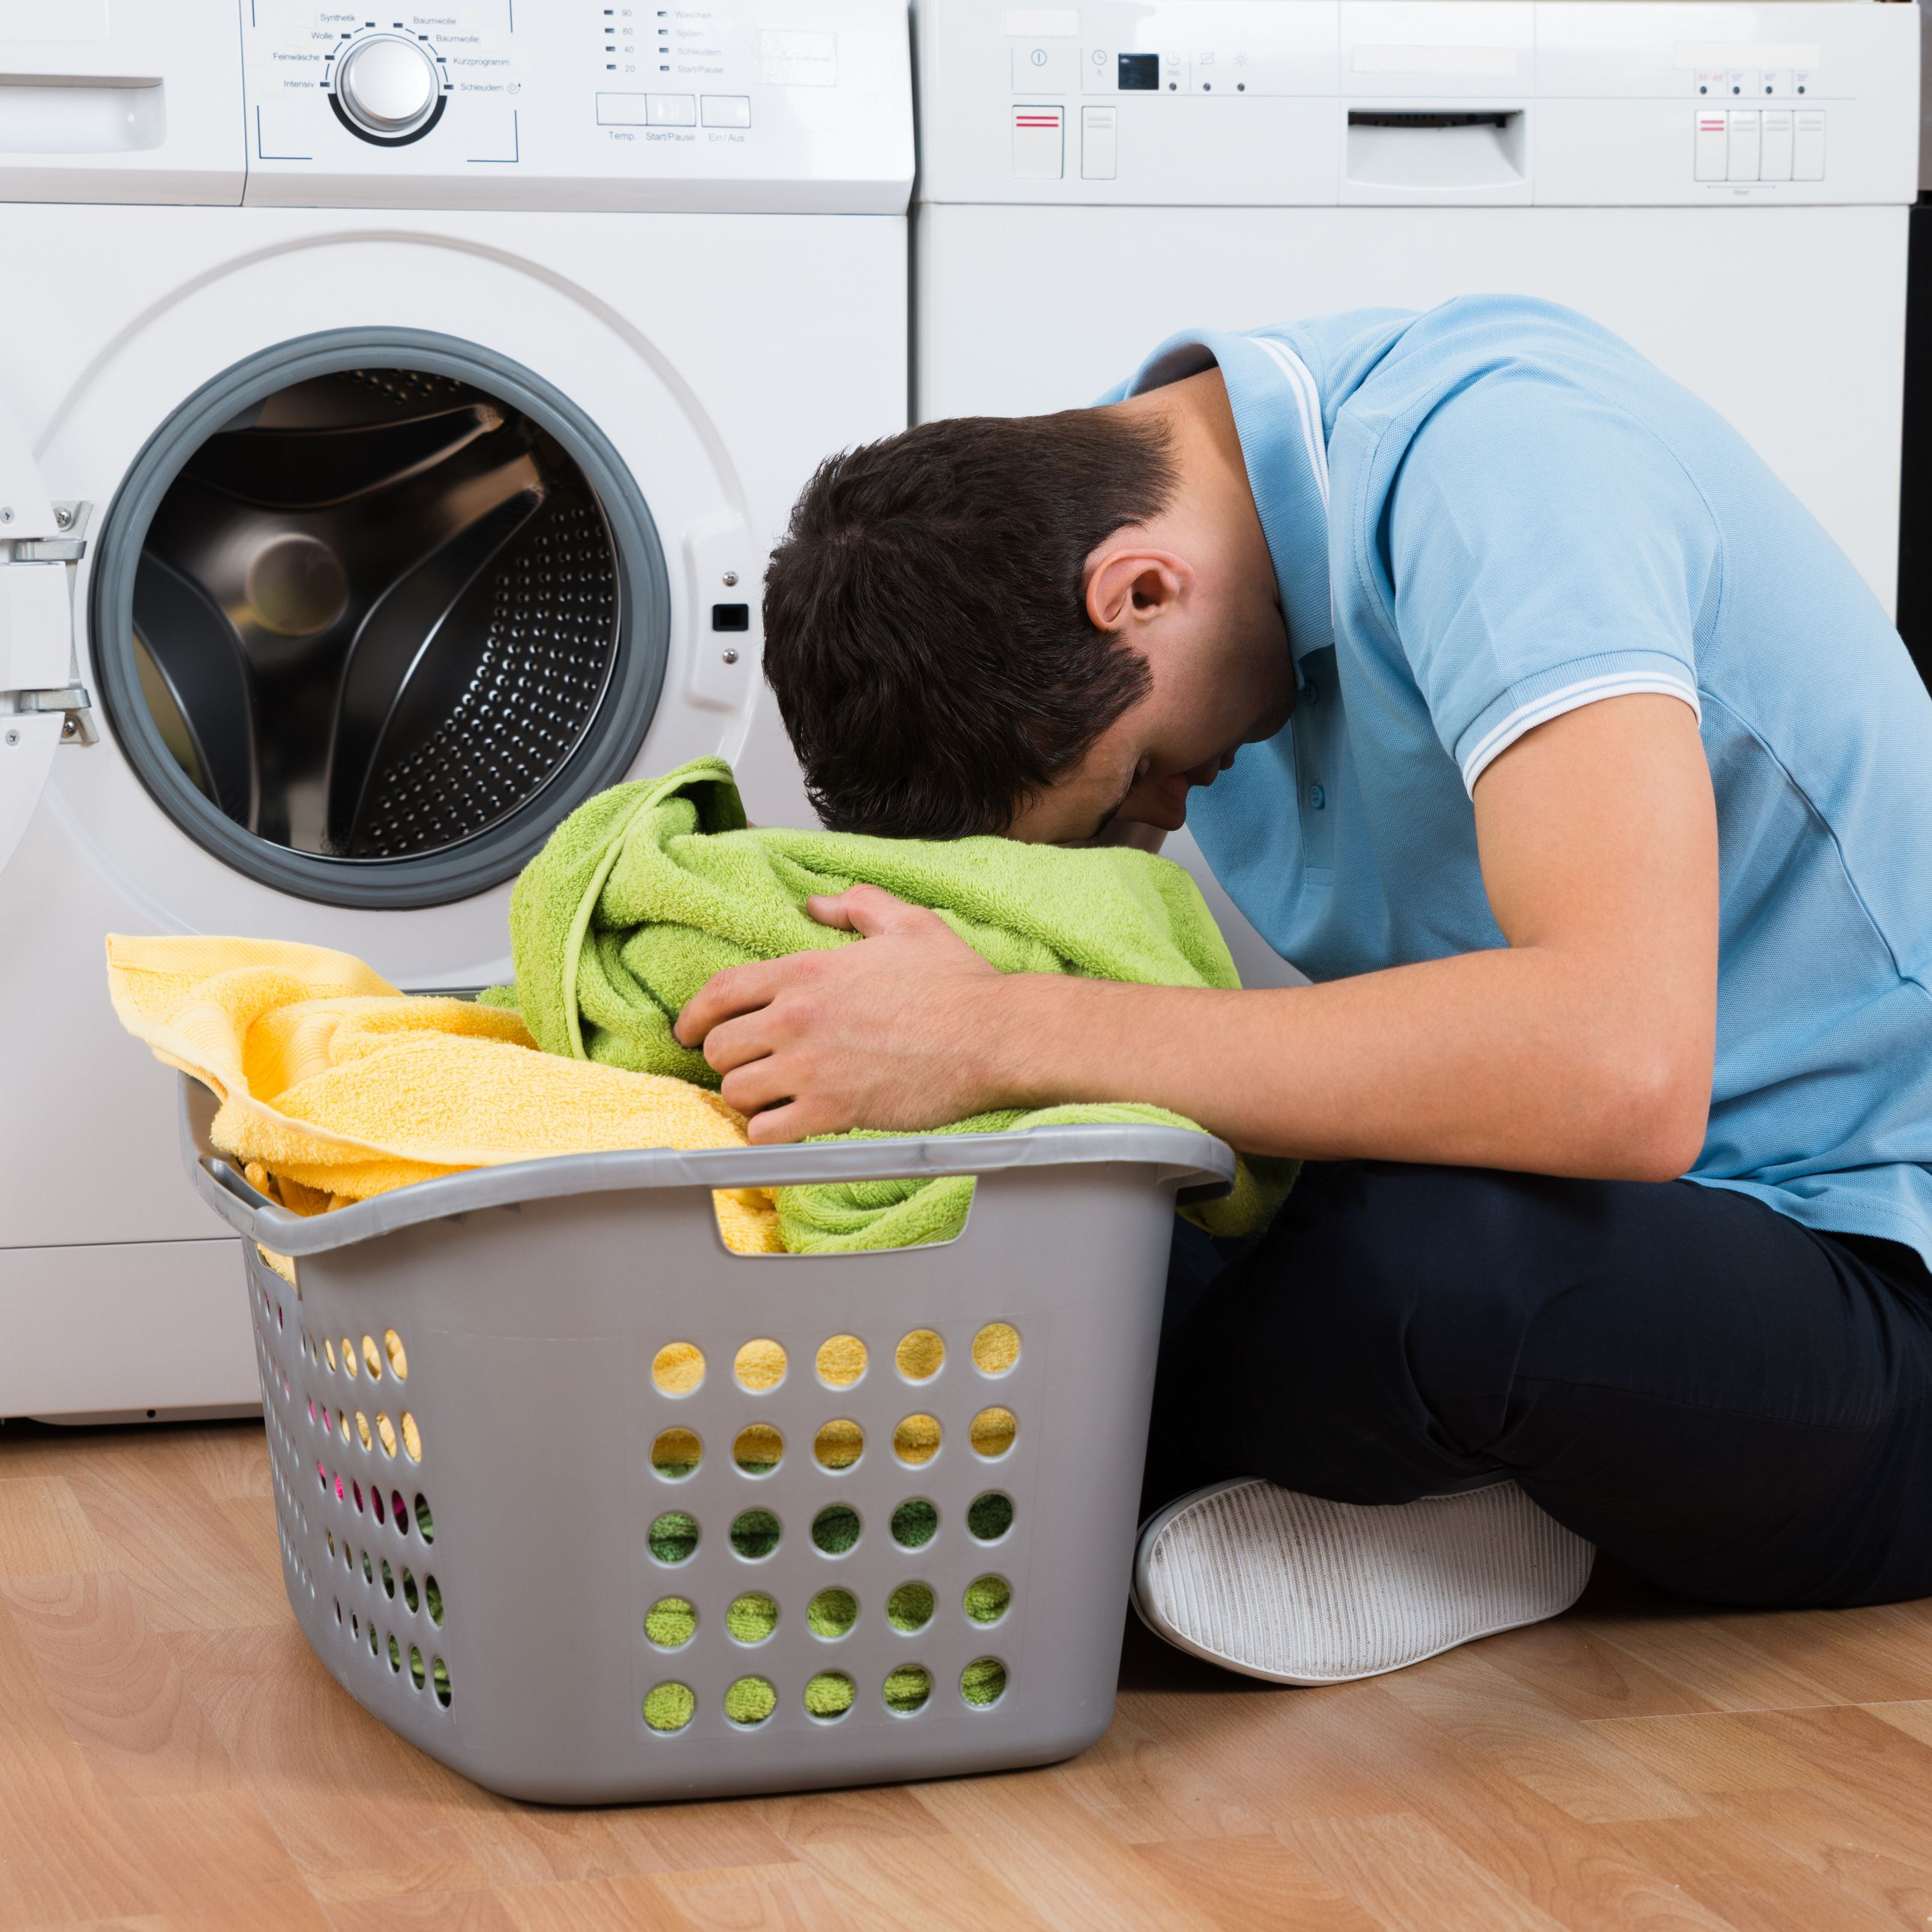 Things to Buy Before Picking the Finest Laundry Service